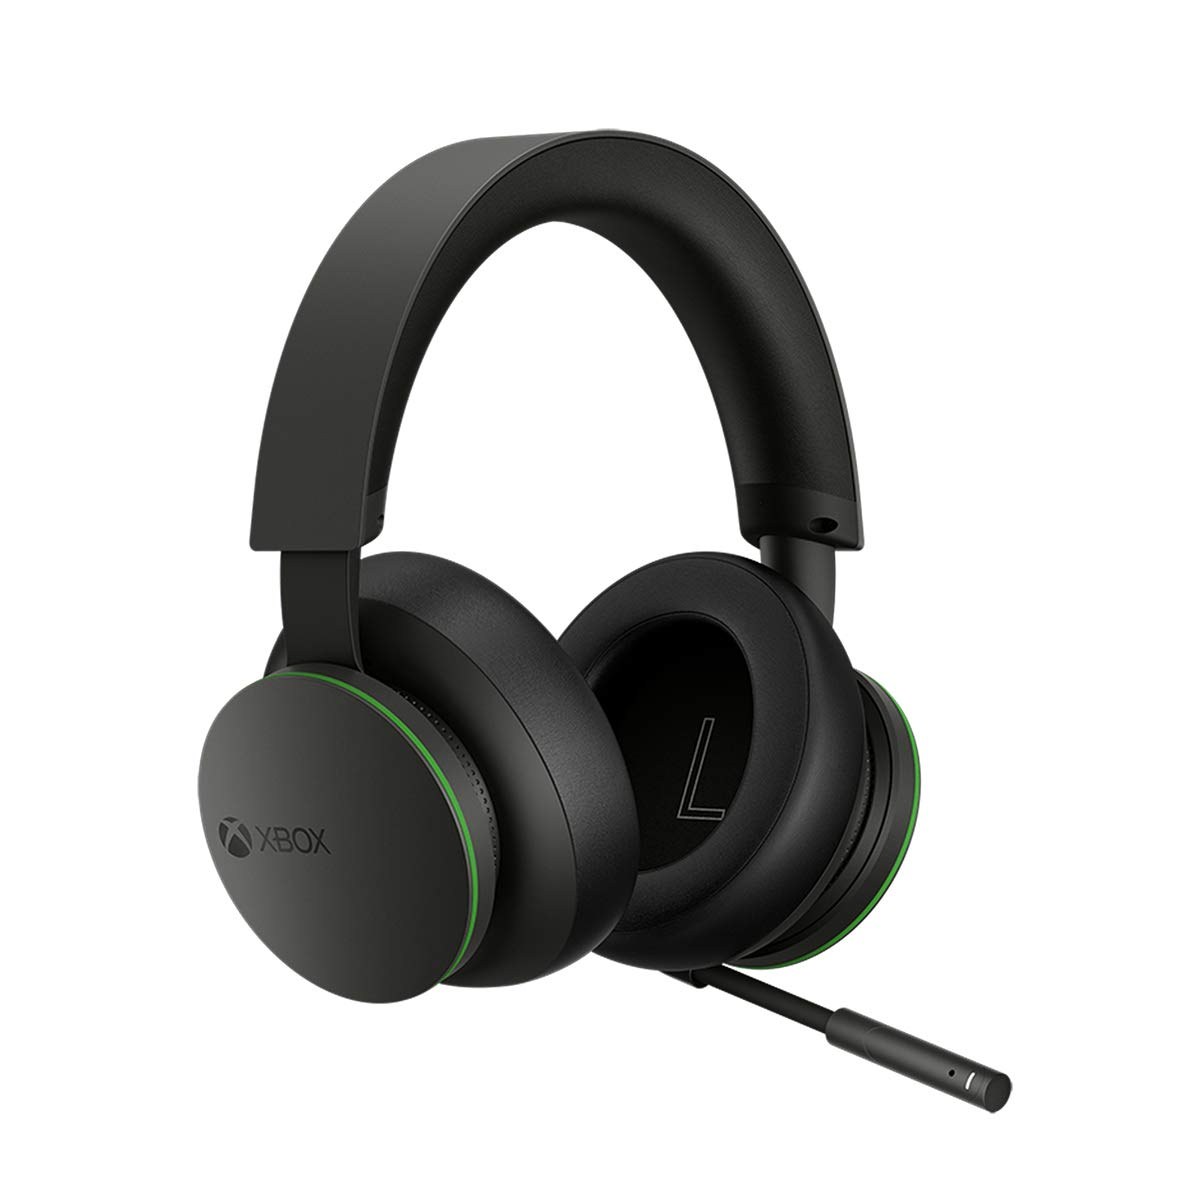 Looking for an #Xbox Wireless Headset? Check @amazon I just snagged one!! Oh Happy Day!!